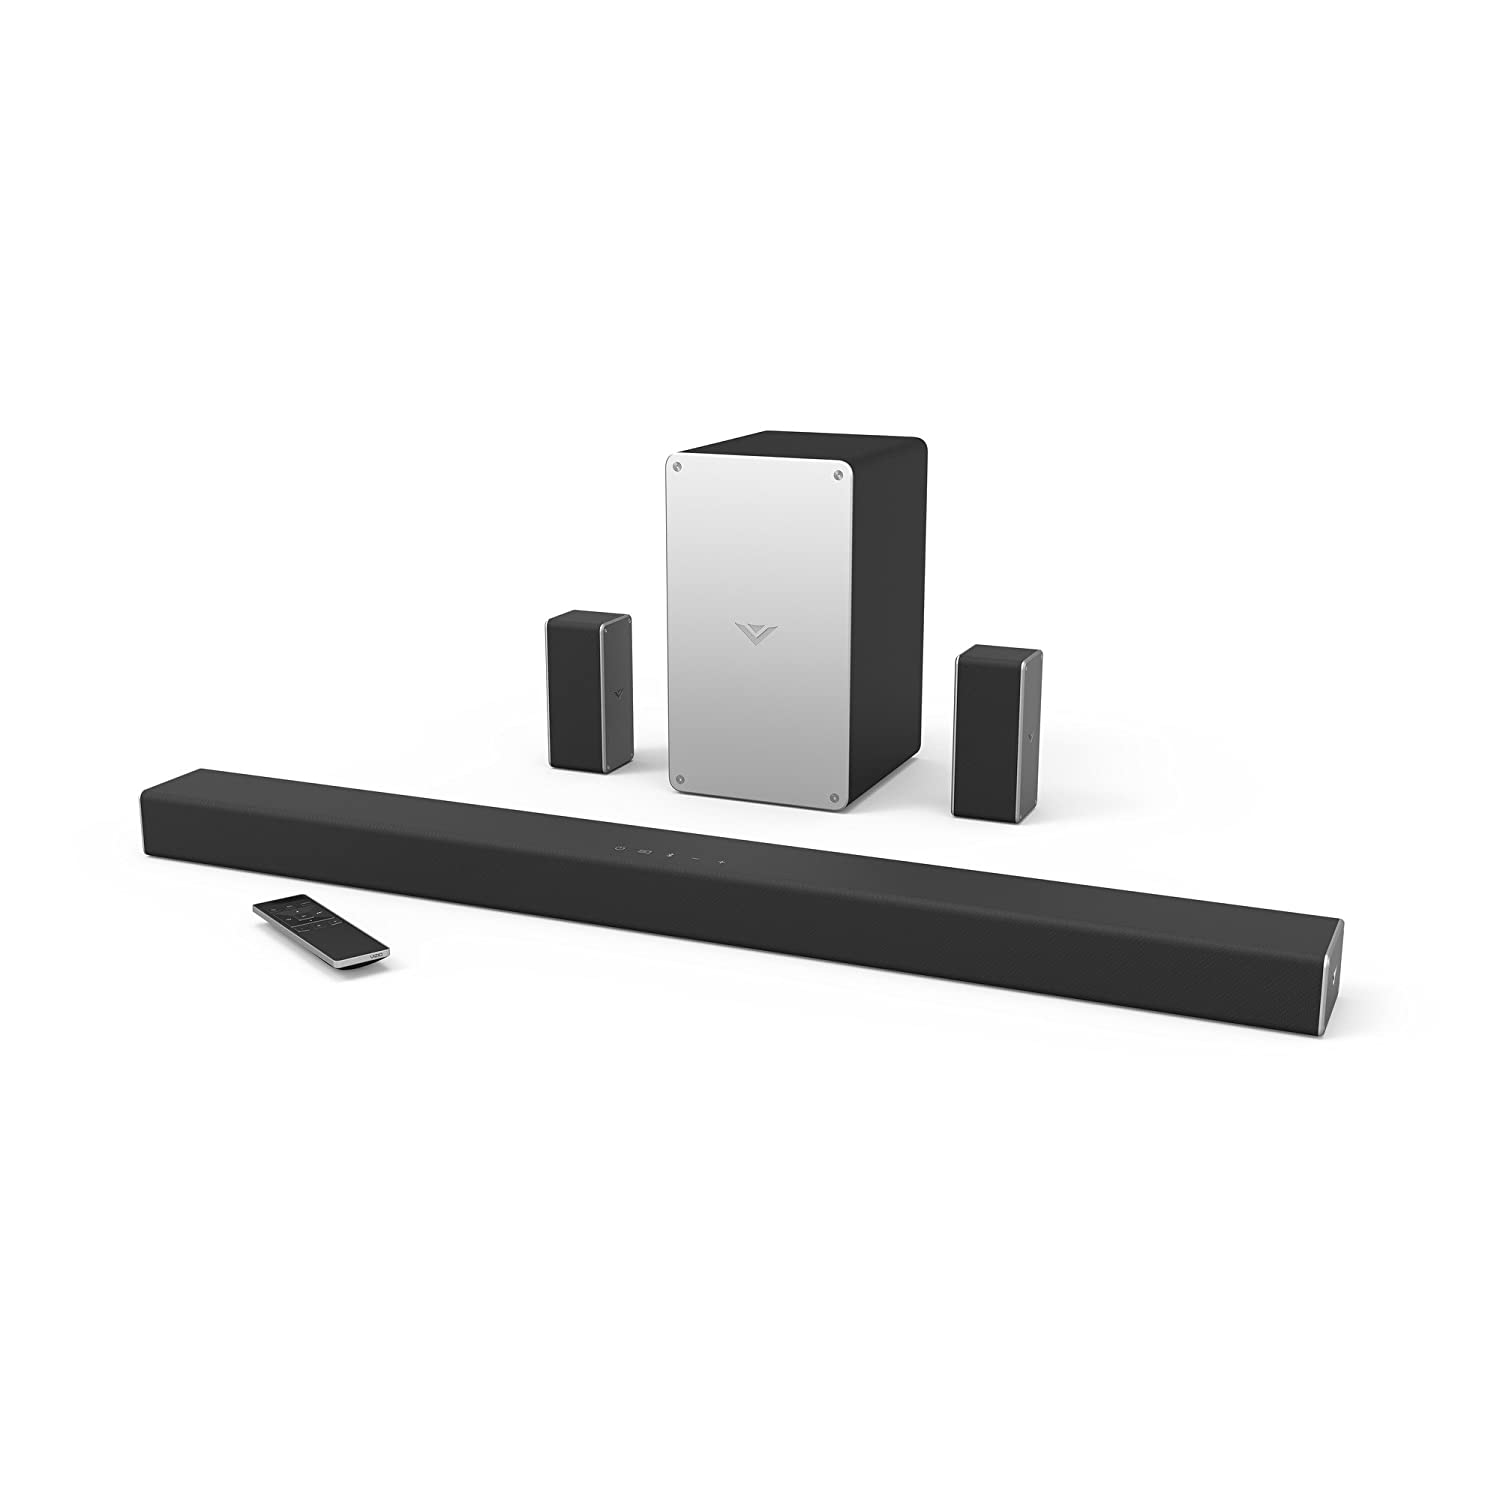 "VIZIO SmartCast 36"" 5.1 Wireless Soundbar System - SB3651-E6 (2017 model)"